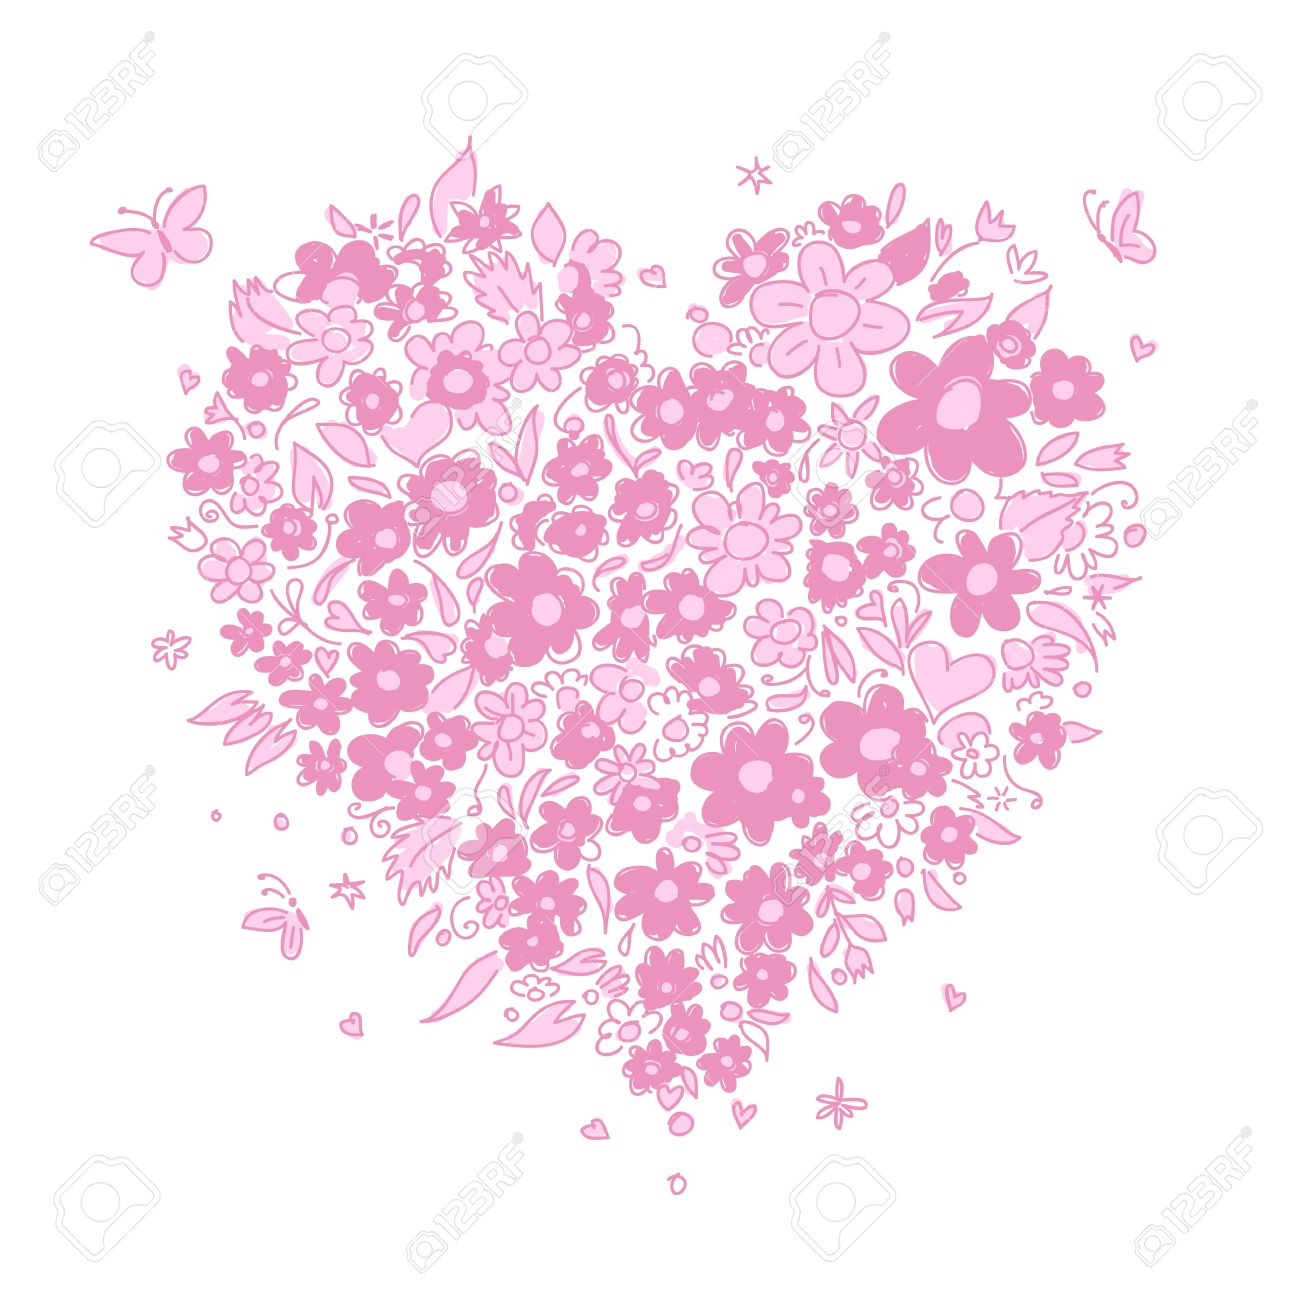 Sketch of floral heart shape for your design Stock Vector - 14417189